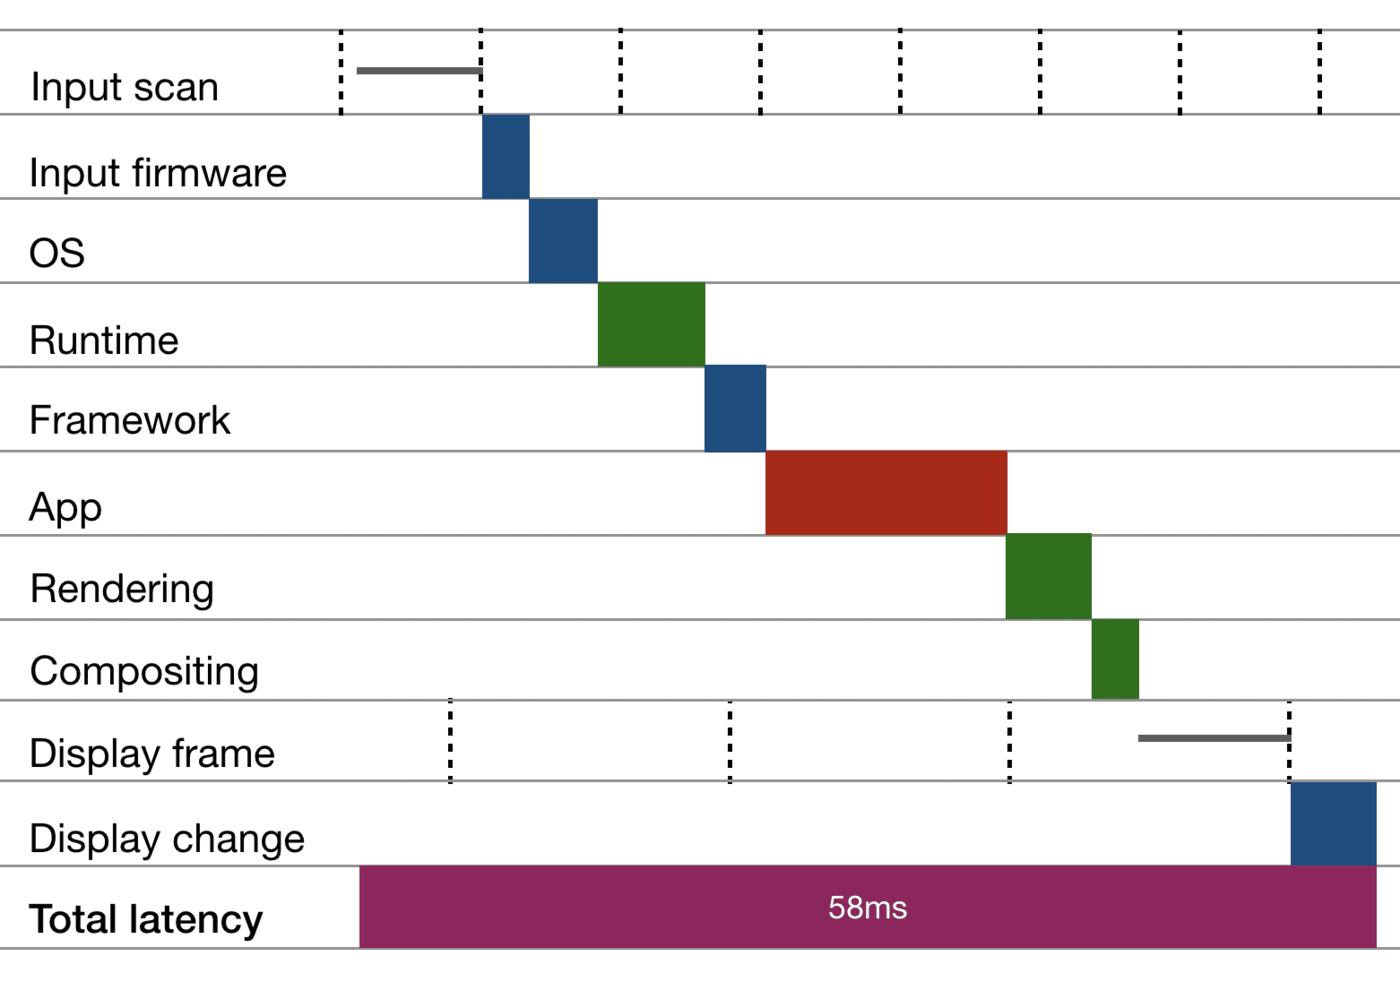 Latency waterfall example: A hypothetical example of end-to-end latency from input to display. Dashed vertical lines indicate cycles the pipeline needs to wait for. (https://www.inkandswitch.com/media/slow-software/input-latency-cascade.png)